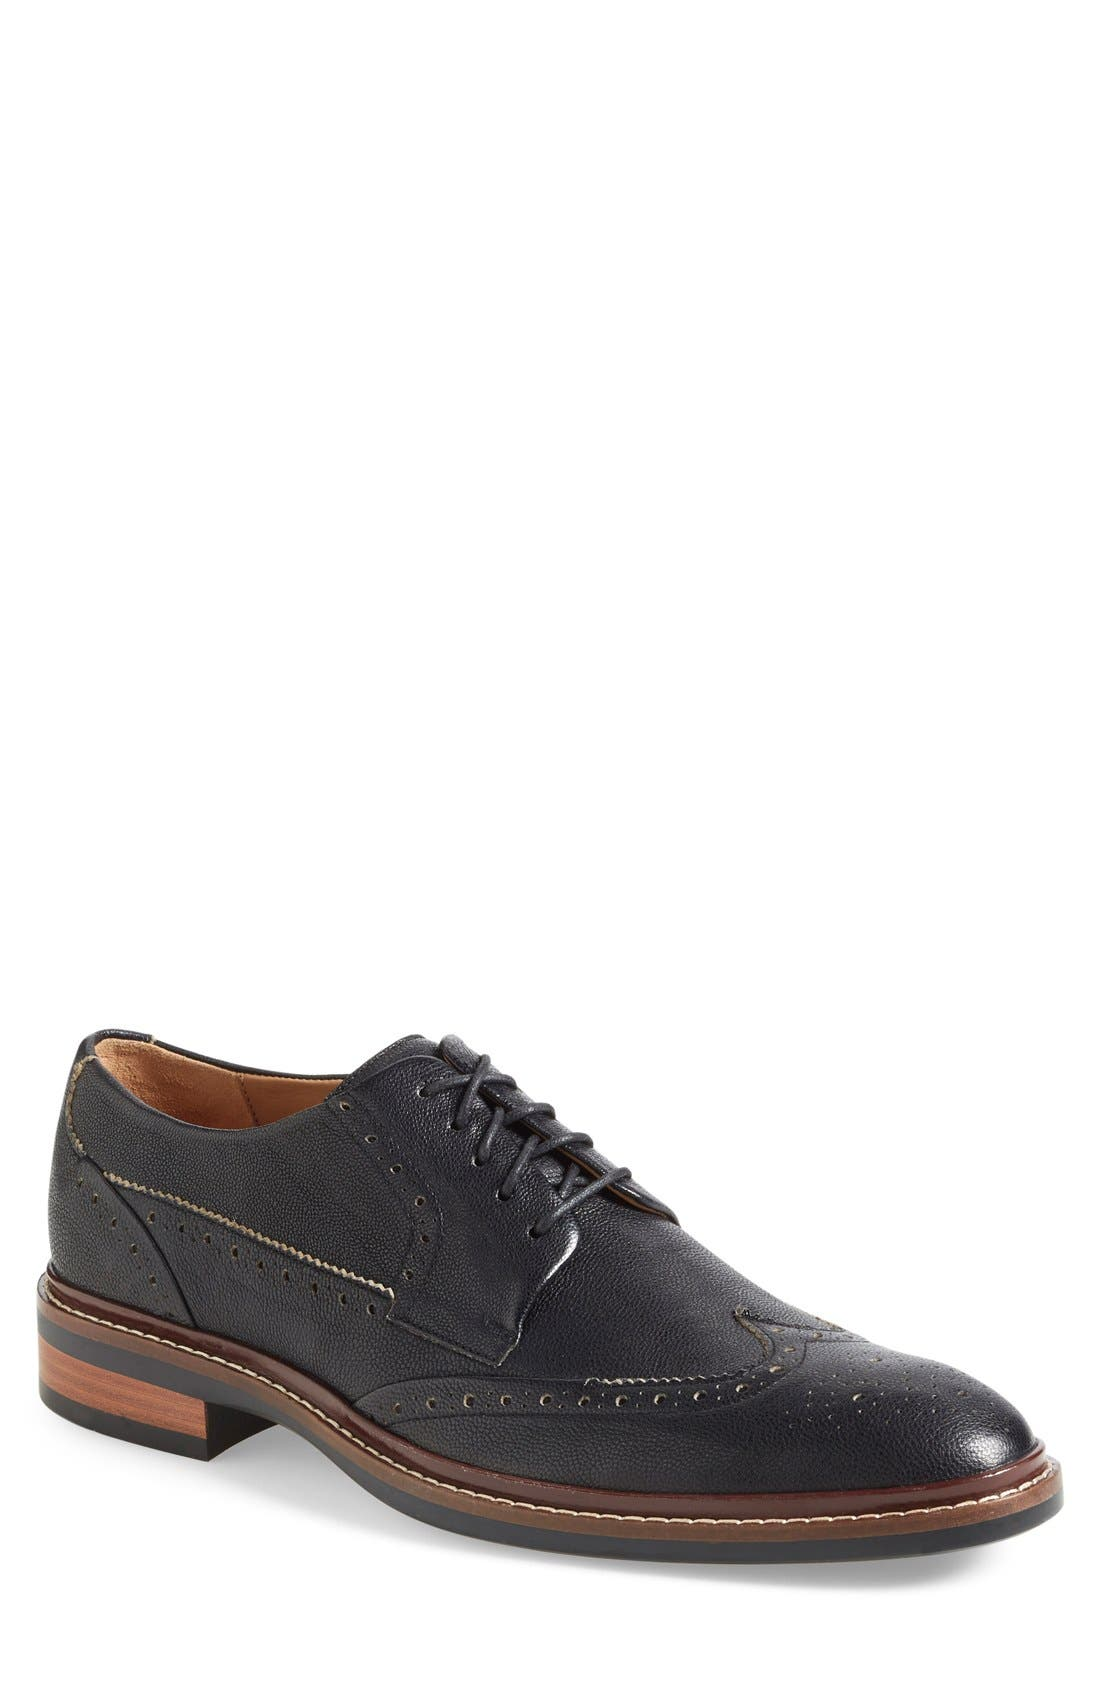 Warren Welt Wingtip,                             Main thumbnail 1, color,                             BLACK MILL LEATHER